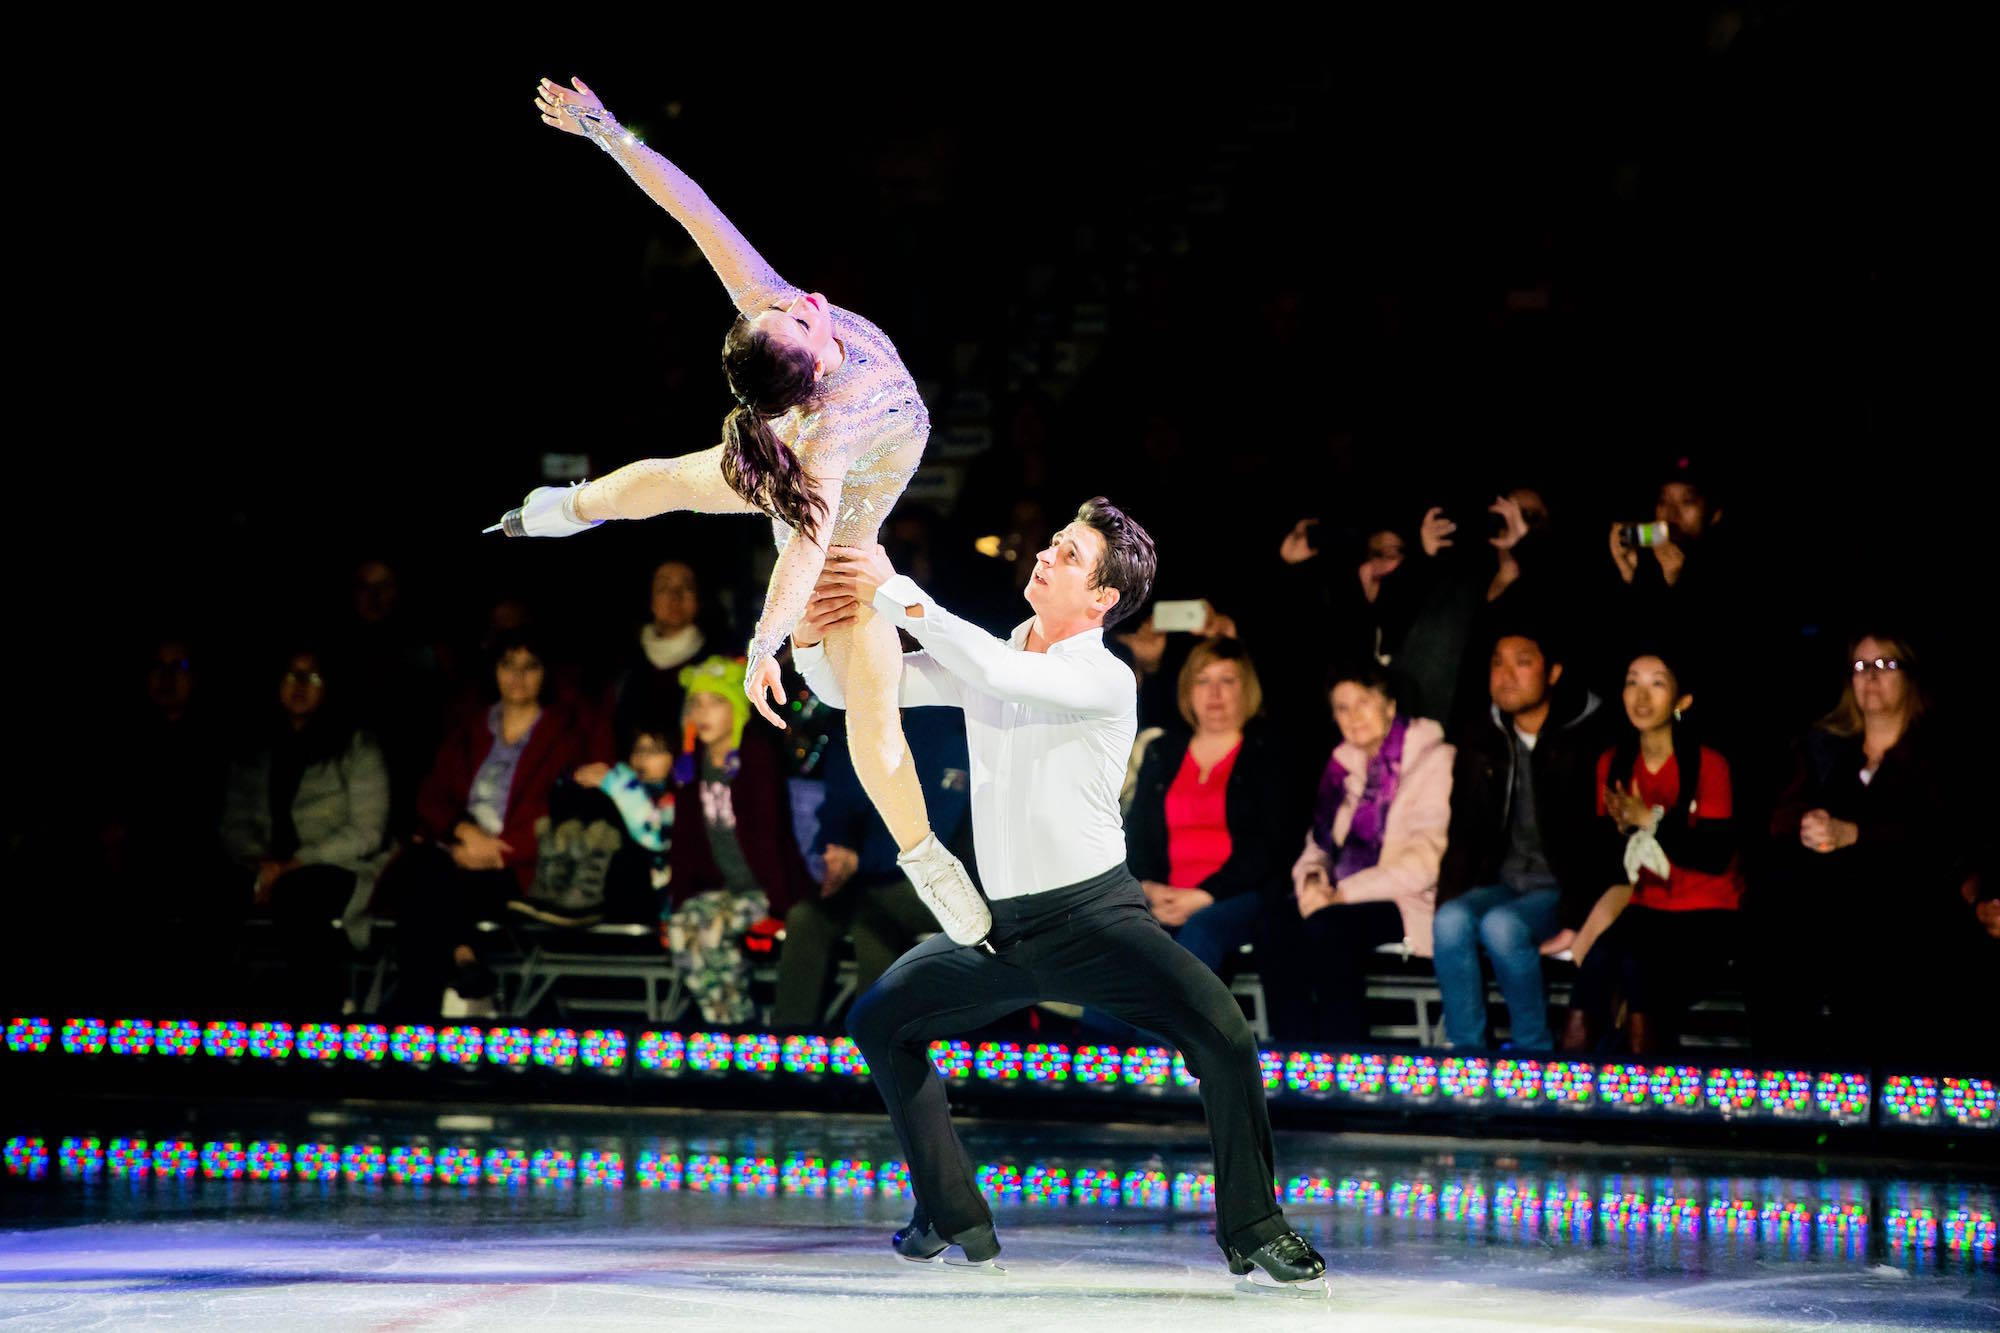 Canadian figure skating champions Tessa Virtue and Scott Moir come to Penticton Oct. 6 with the Rock the Rink tour. This will be the pair's last tour as they have announced they are retiring from the world of competitive figure skating. (Contributed)